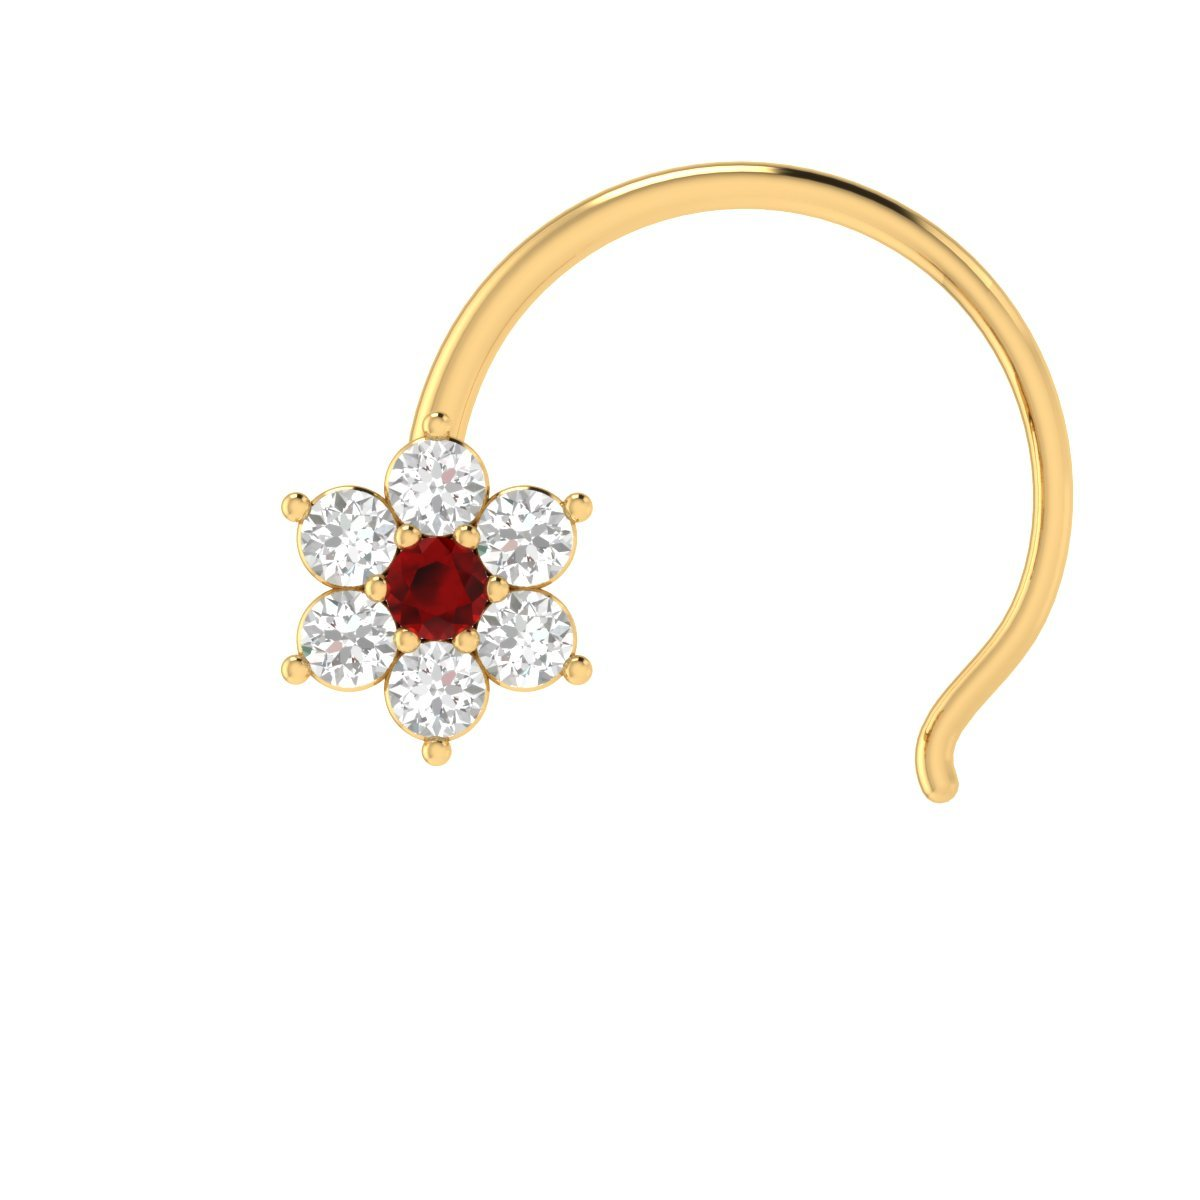 Animas Jewels DGLA Certified 14k Yellow Gold Flower Nose Pin Ring for Women 0.08 Cttw Natural Diamond (G-H Color. SI Clarity) and Red Ruby Round Cut Single Prong Setting by Animas Jewels